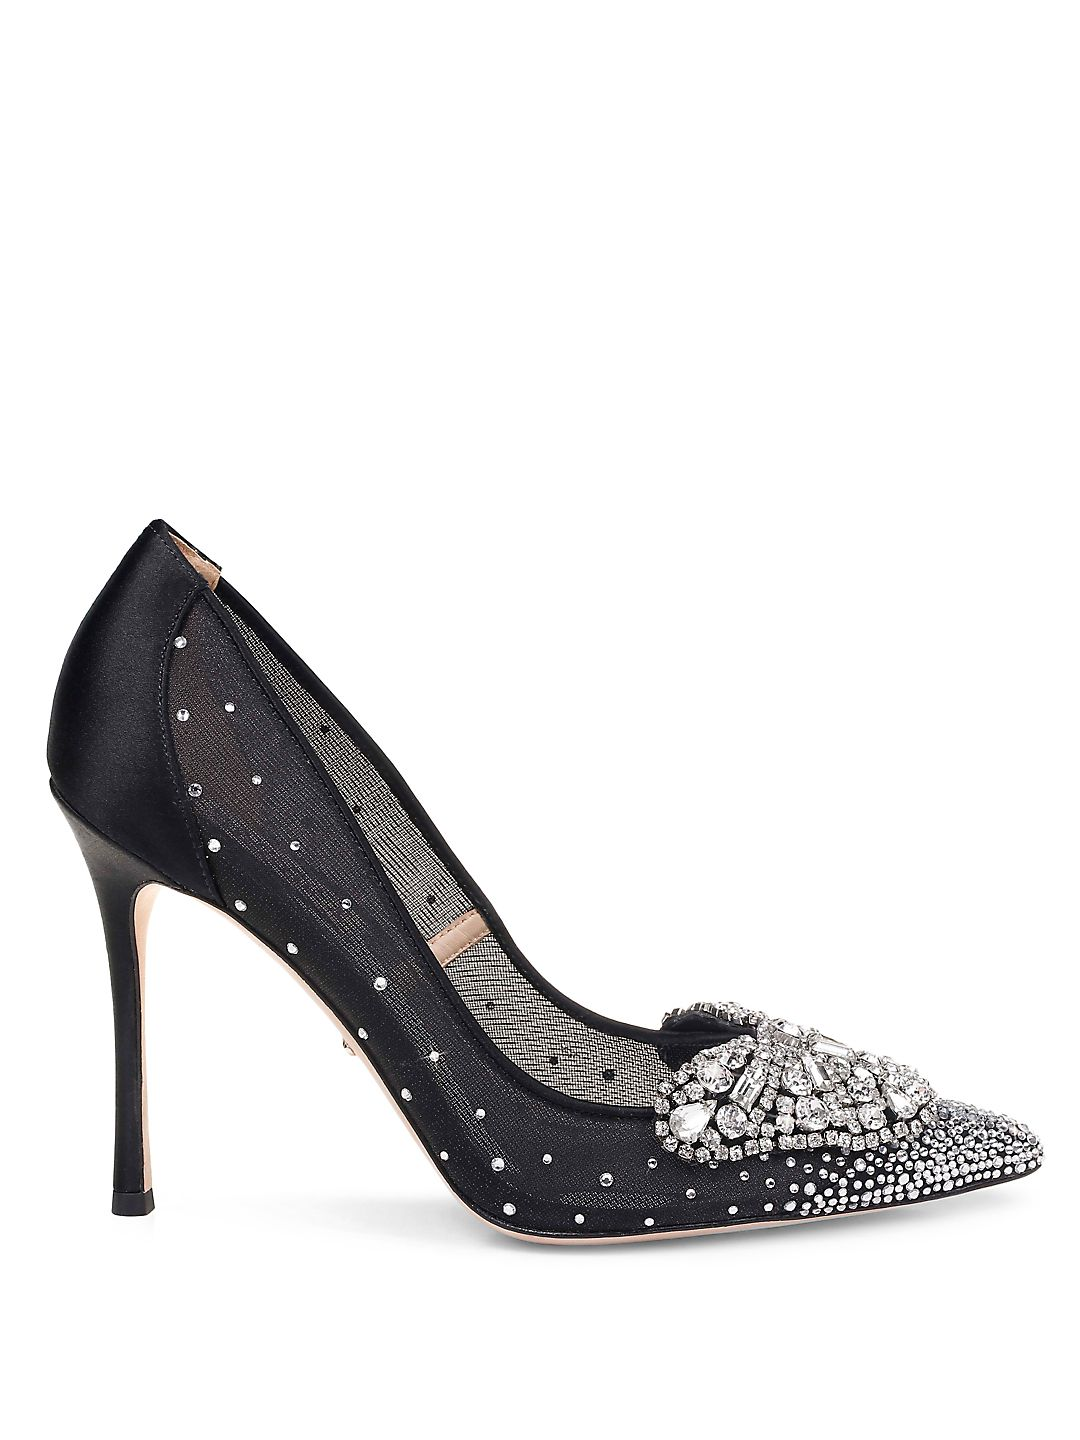 Quintana Embellished Satin Stiletto Pumps